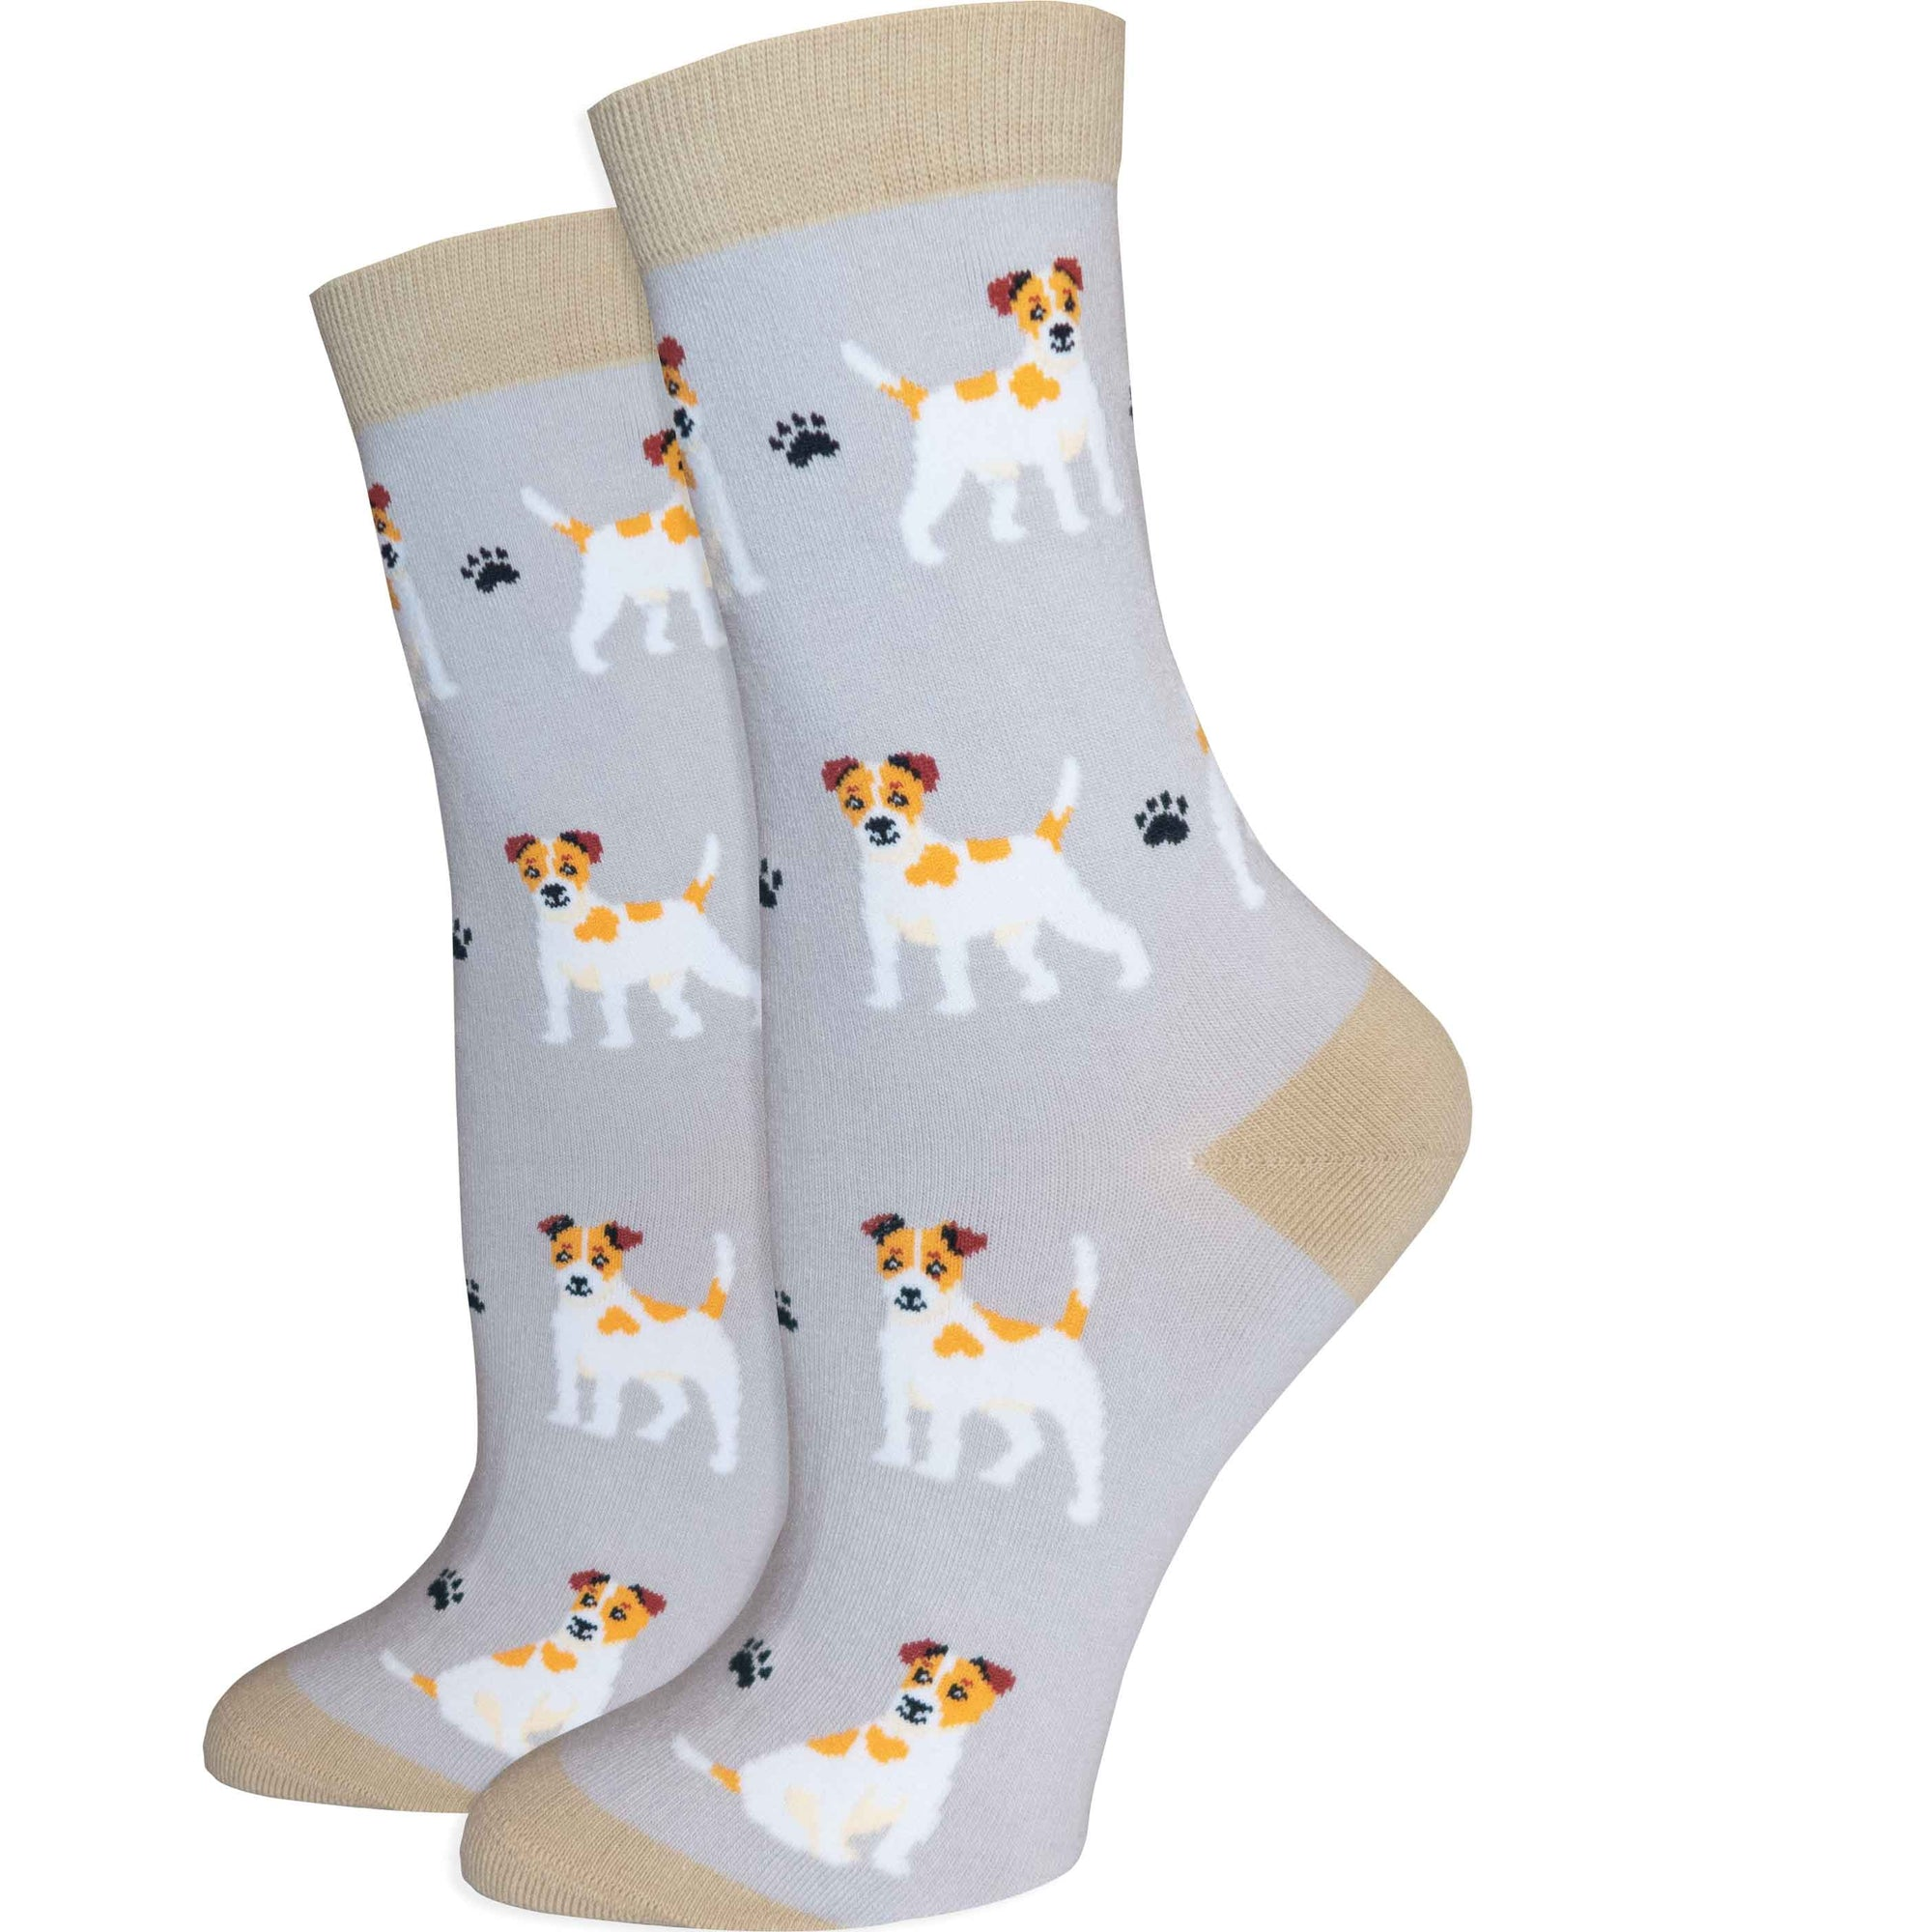 Jack Russell Terrier - Imagery Socks